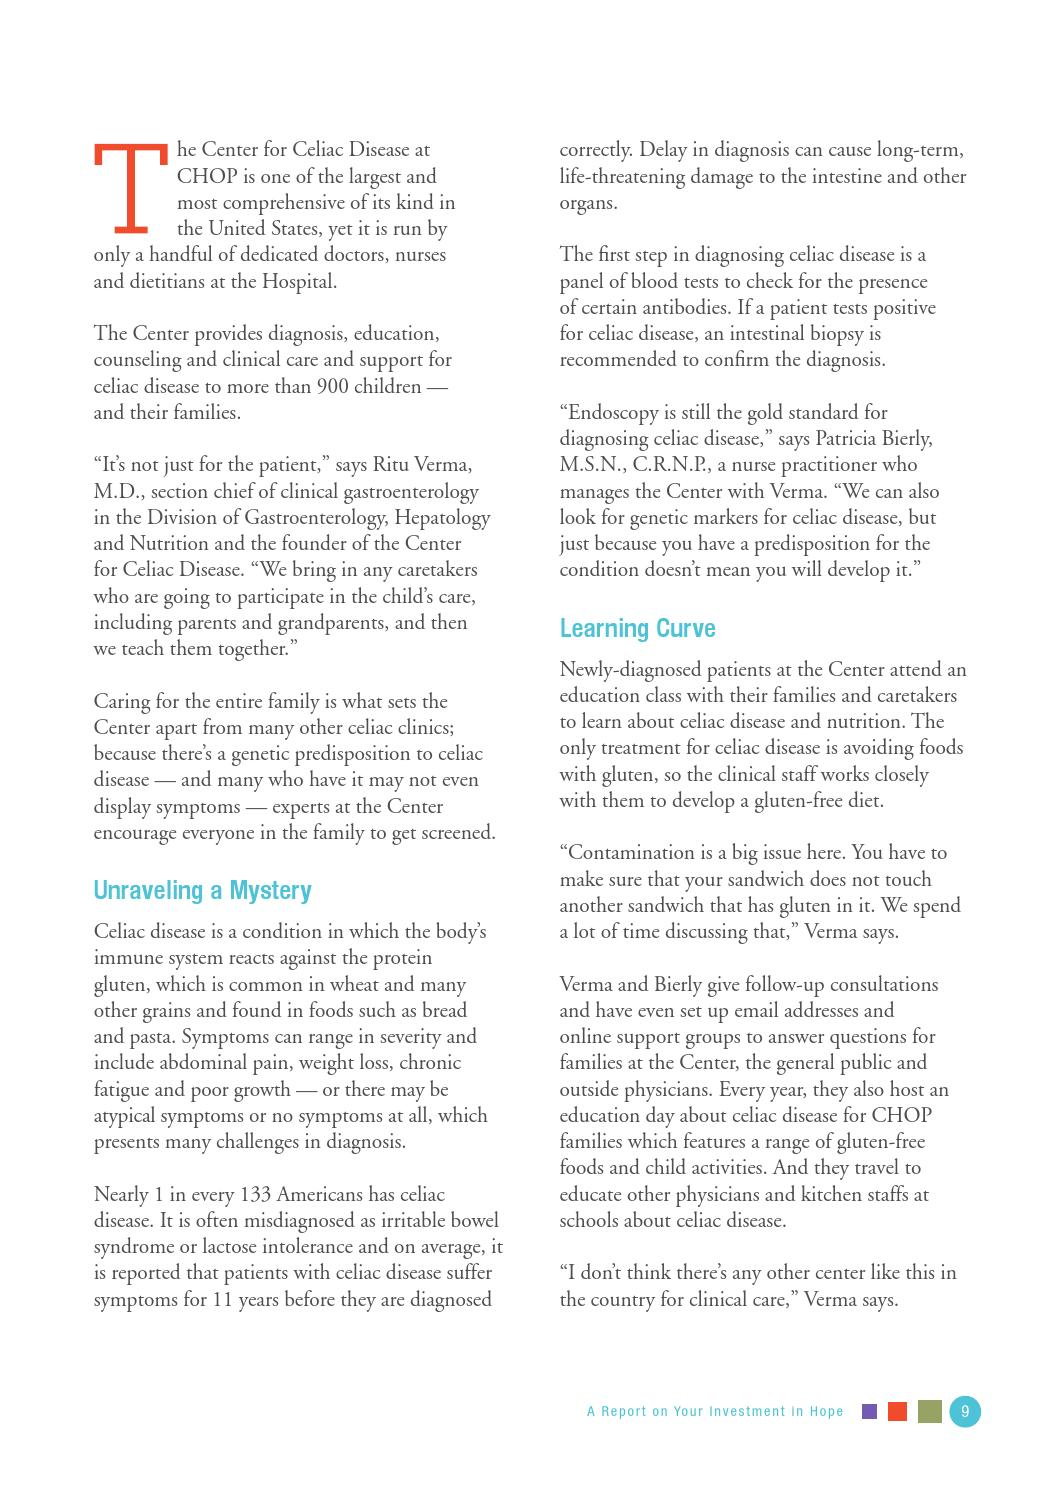 2013 GI Stewarship Report by The Children's Hospital of